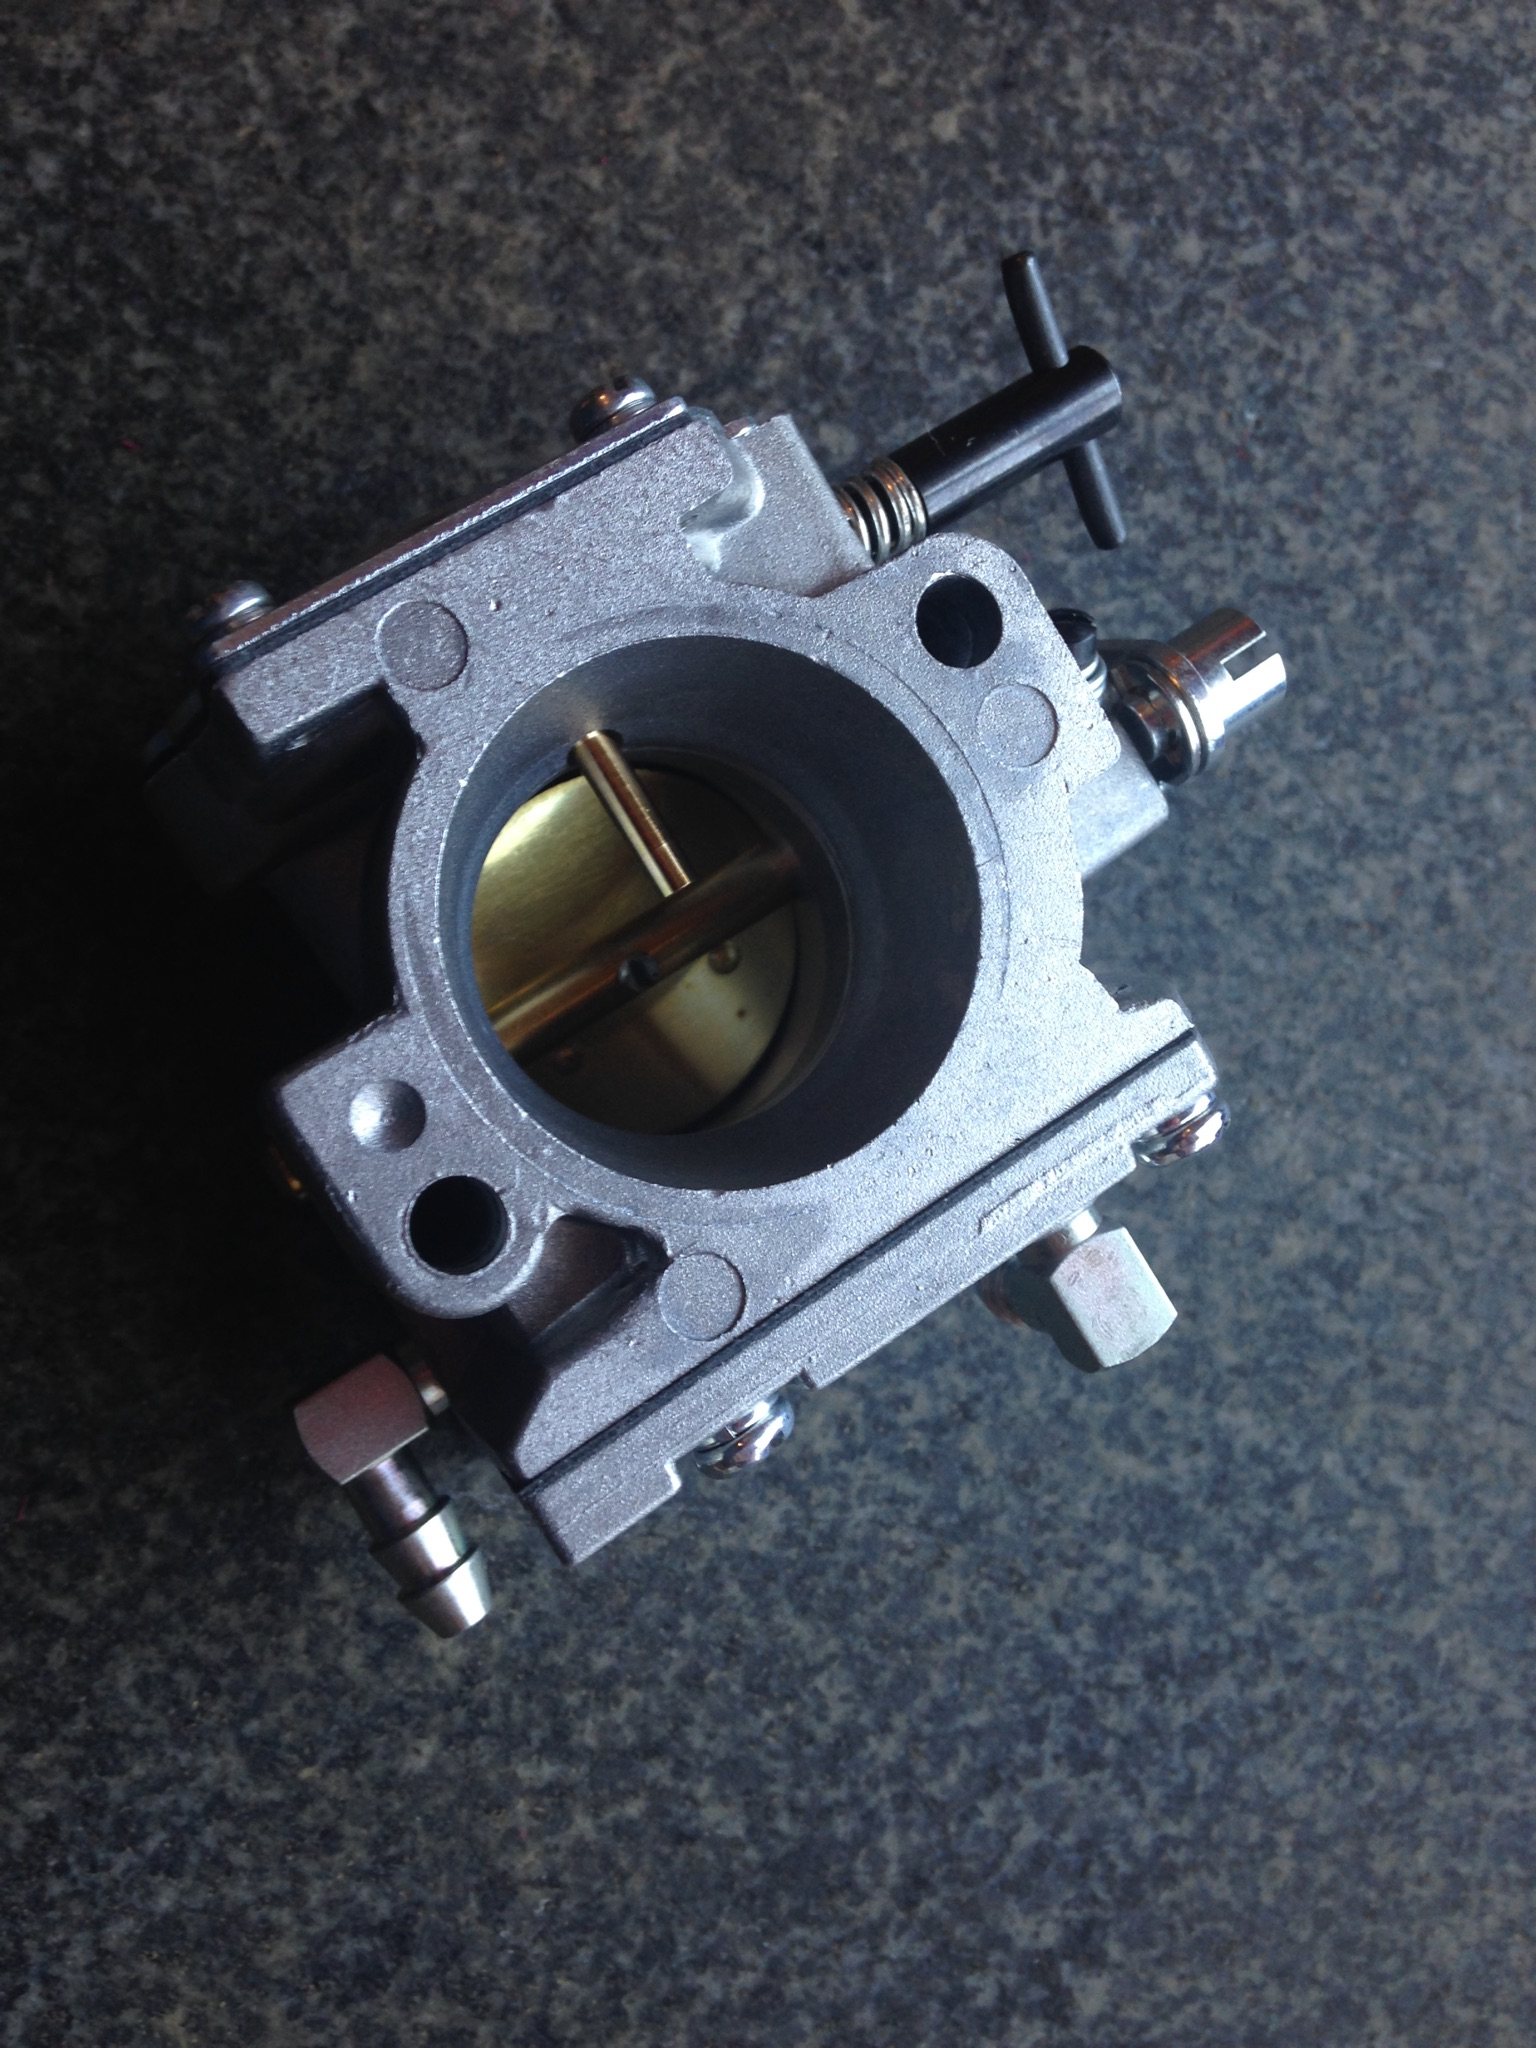 Walbro WB-37c Carburetor aircraft carb